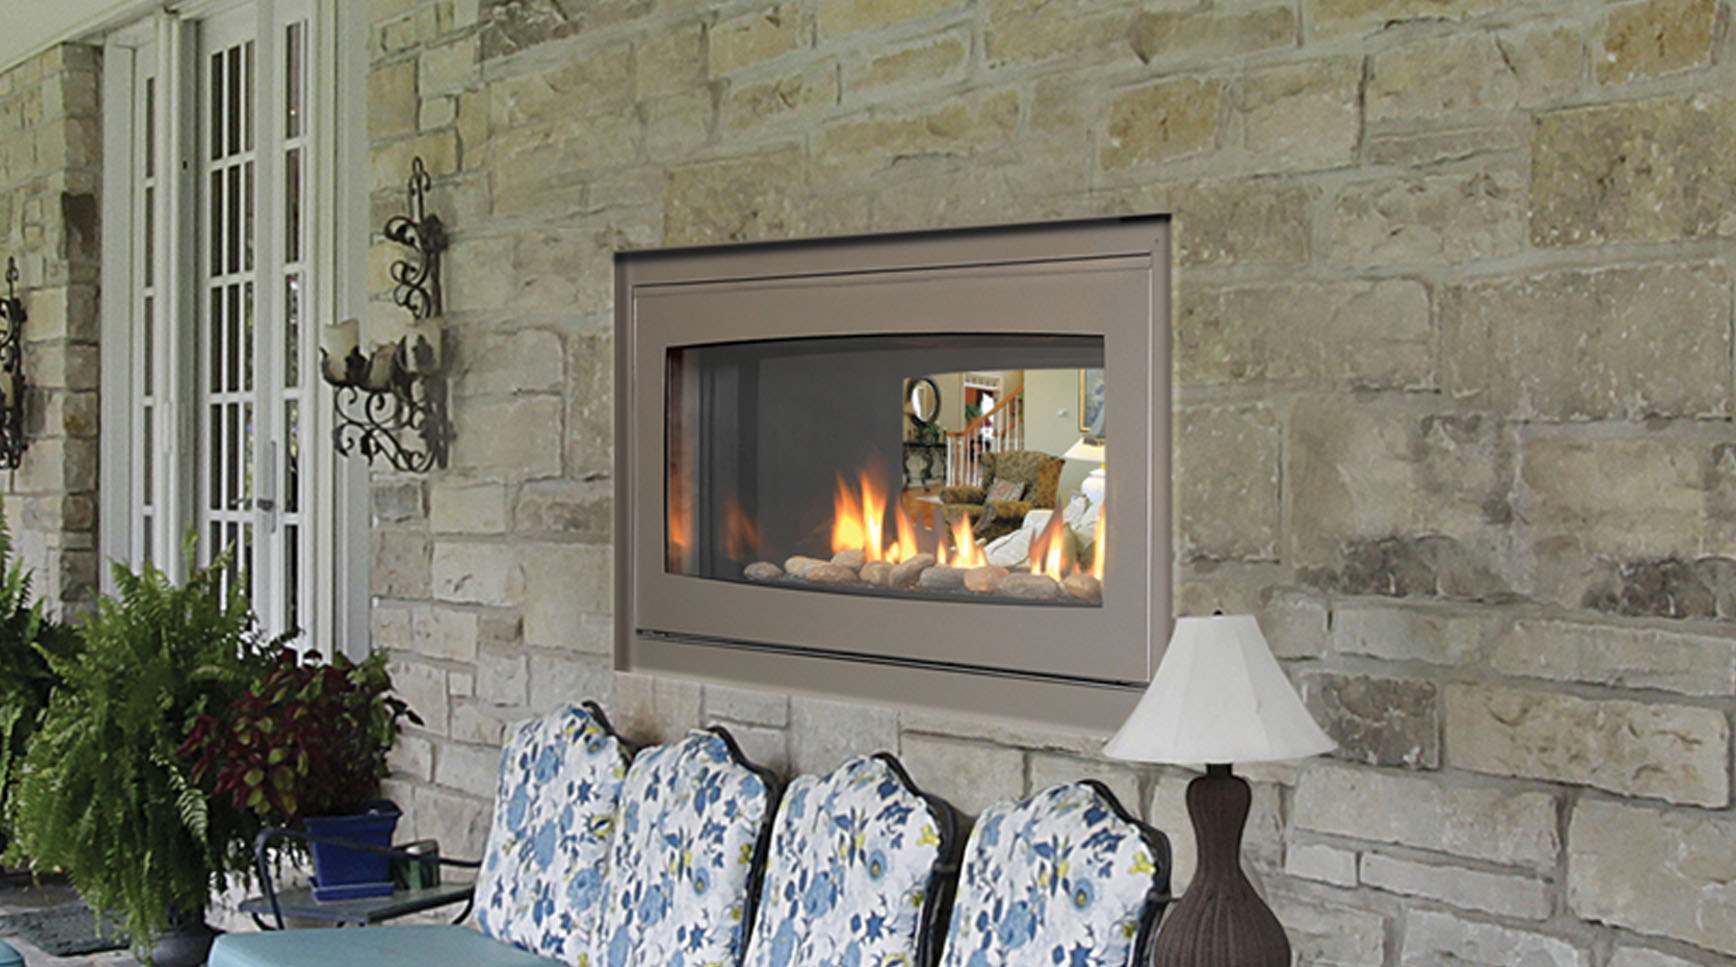 Gas Fireplace Indoor Indoor Outdoor Gas Fireplace | Fireplace Design Ideas